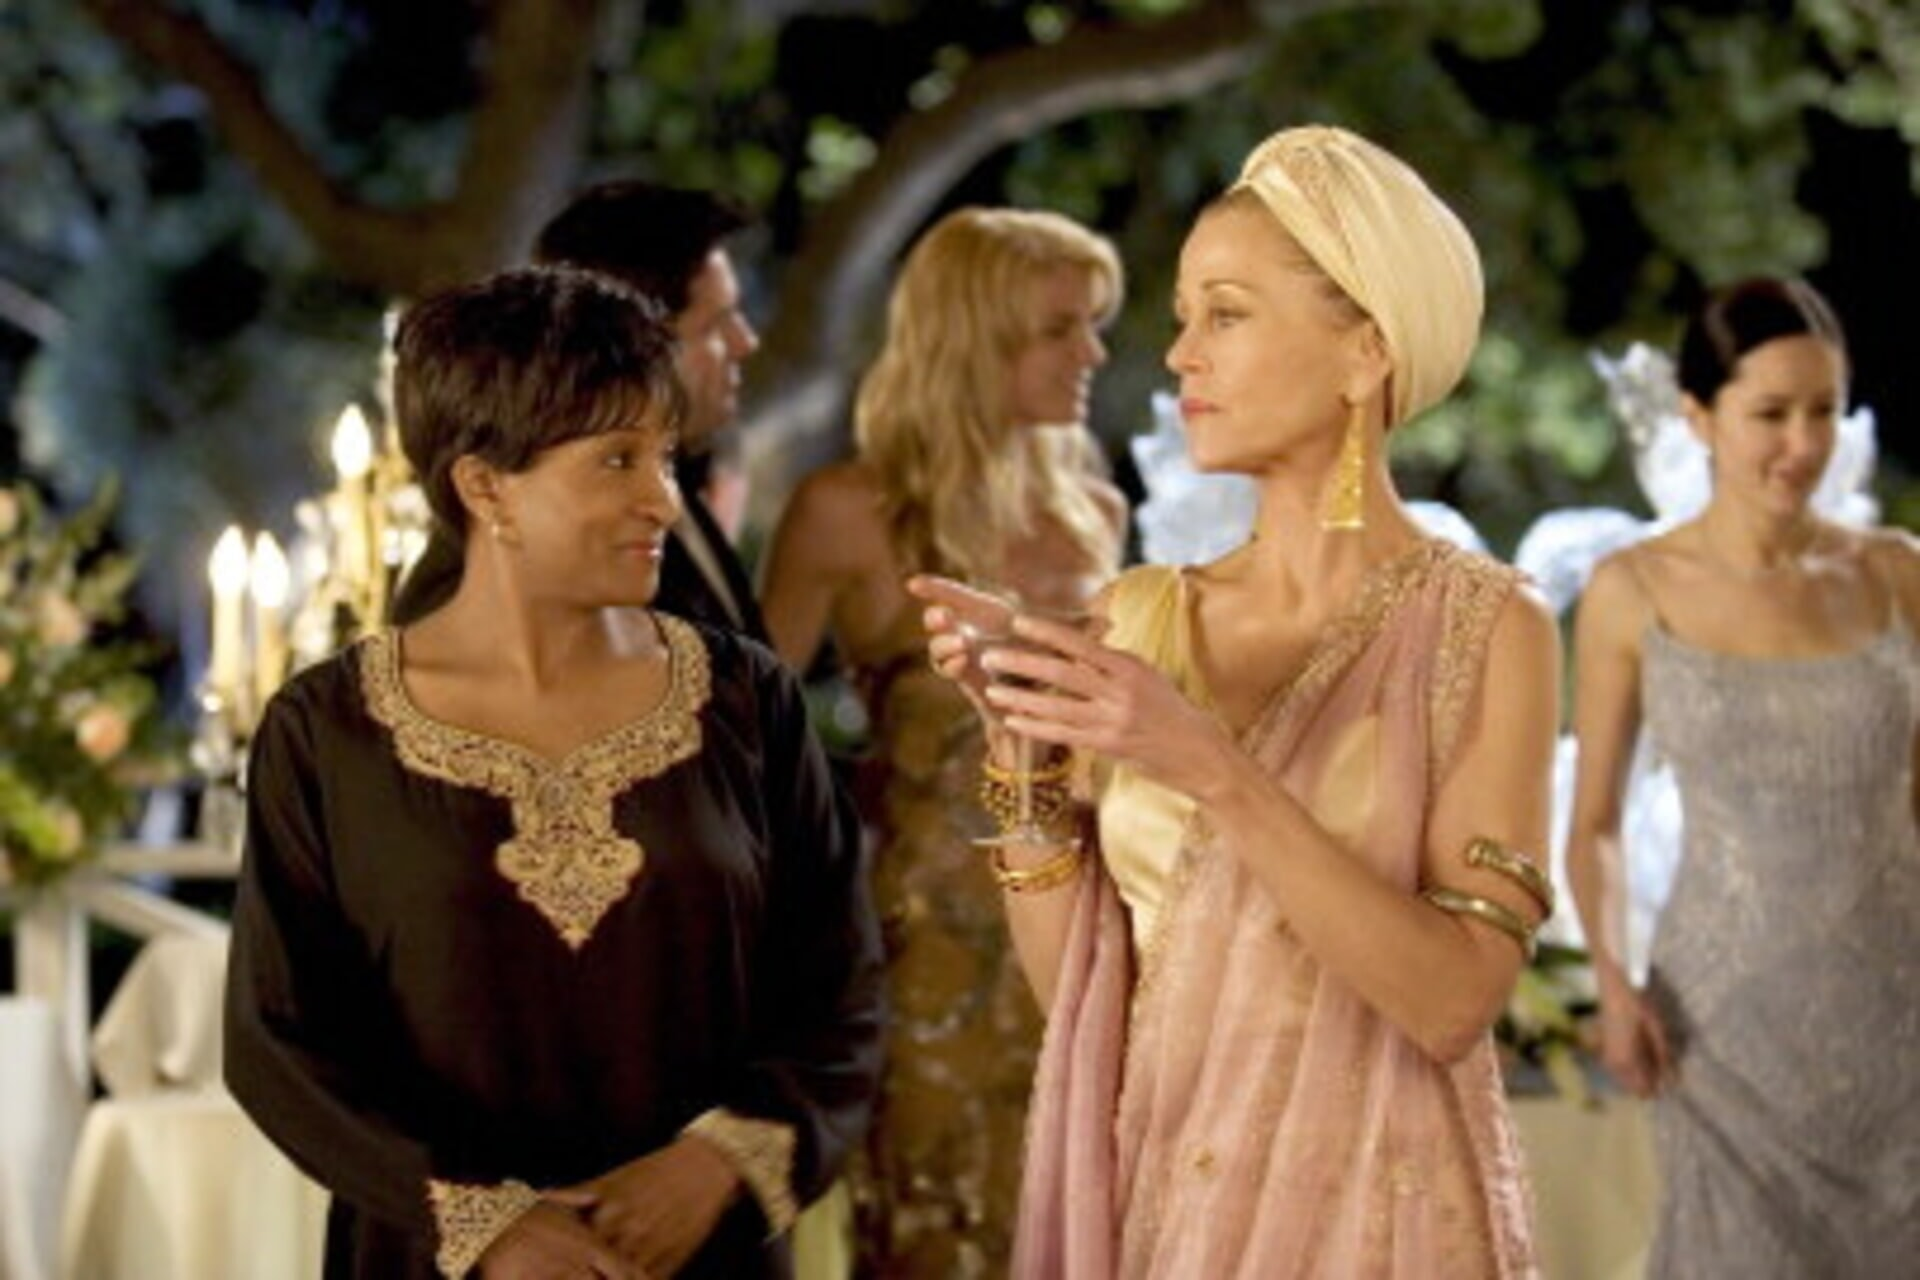 Monster-in-law - Image 15